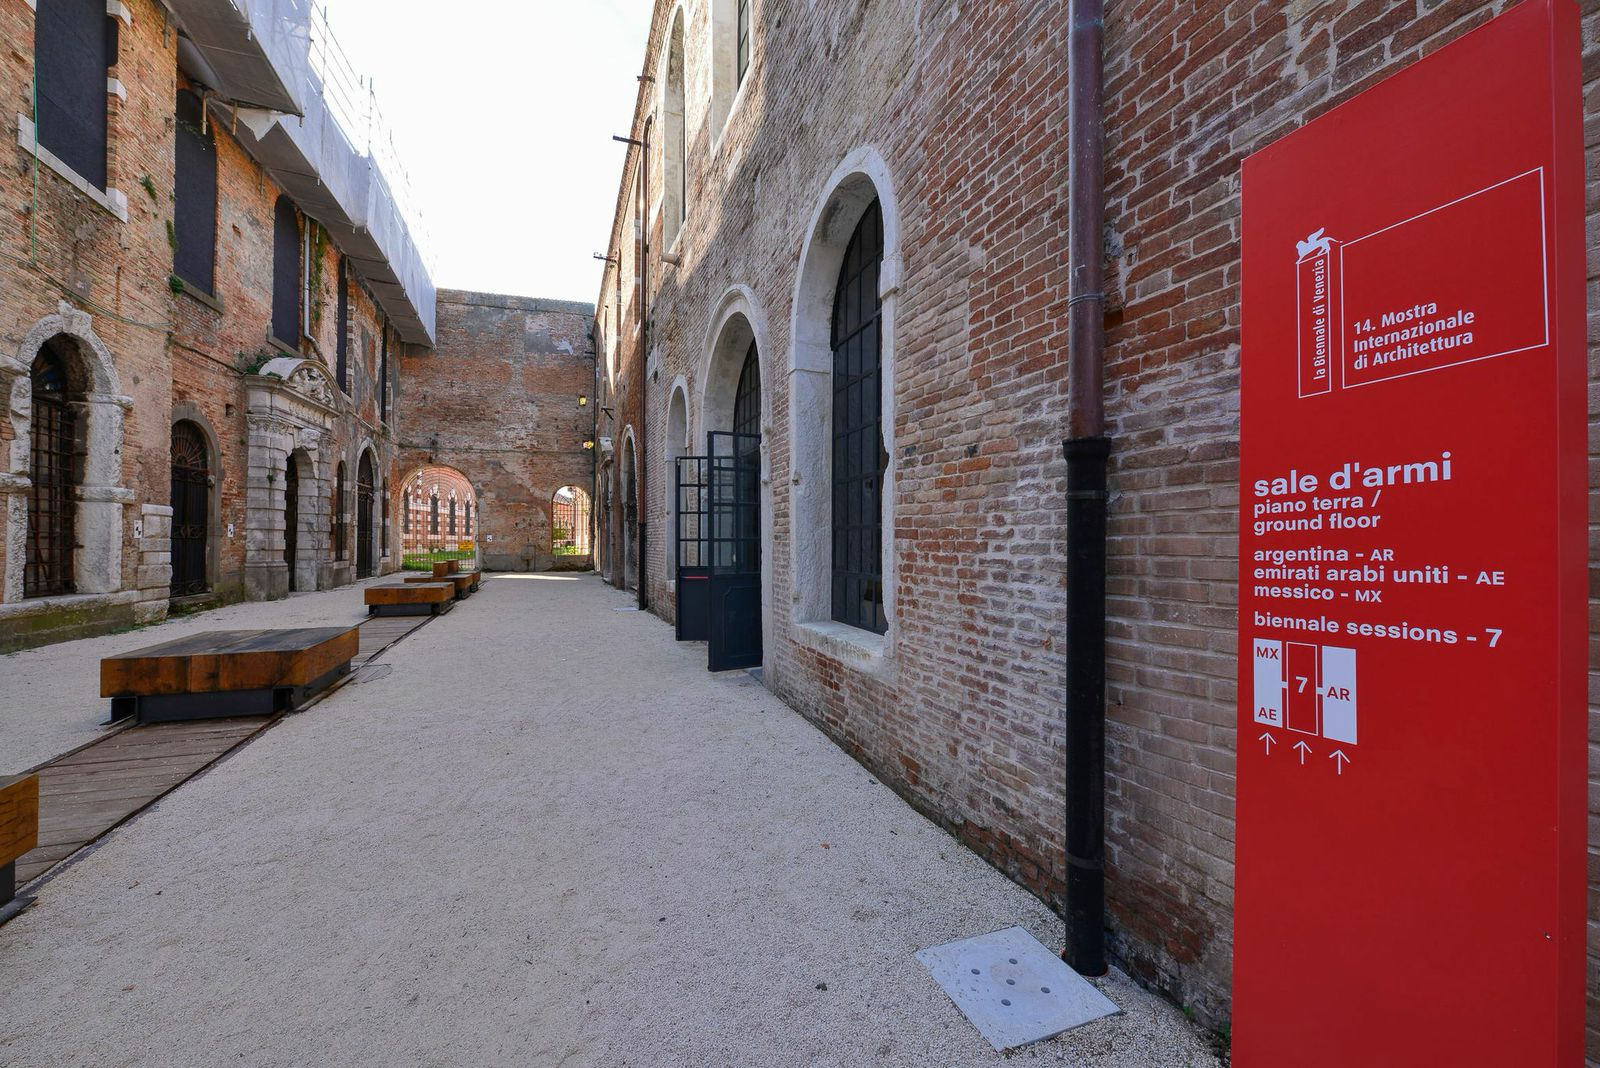 https://www.scribd.com/doc/264079279/Open-Skies-Venice-Biennale